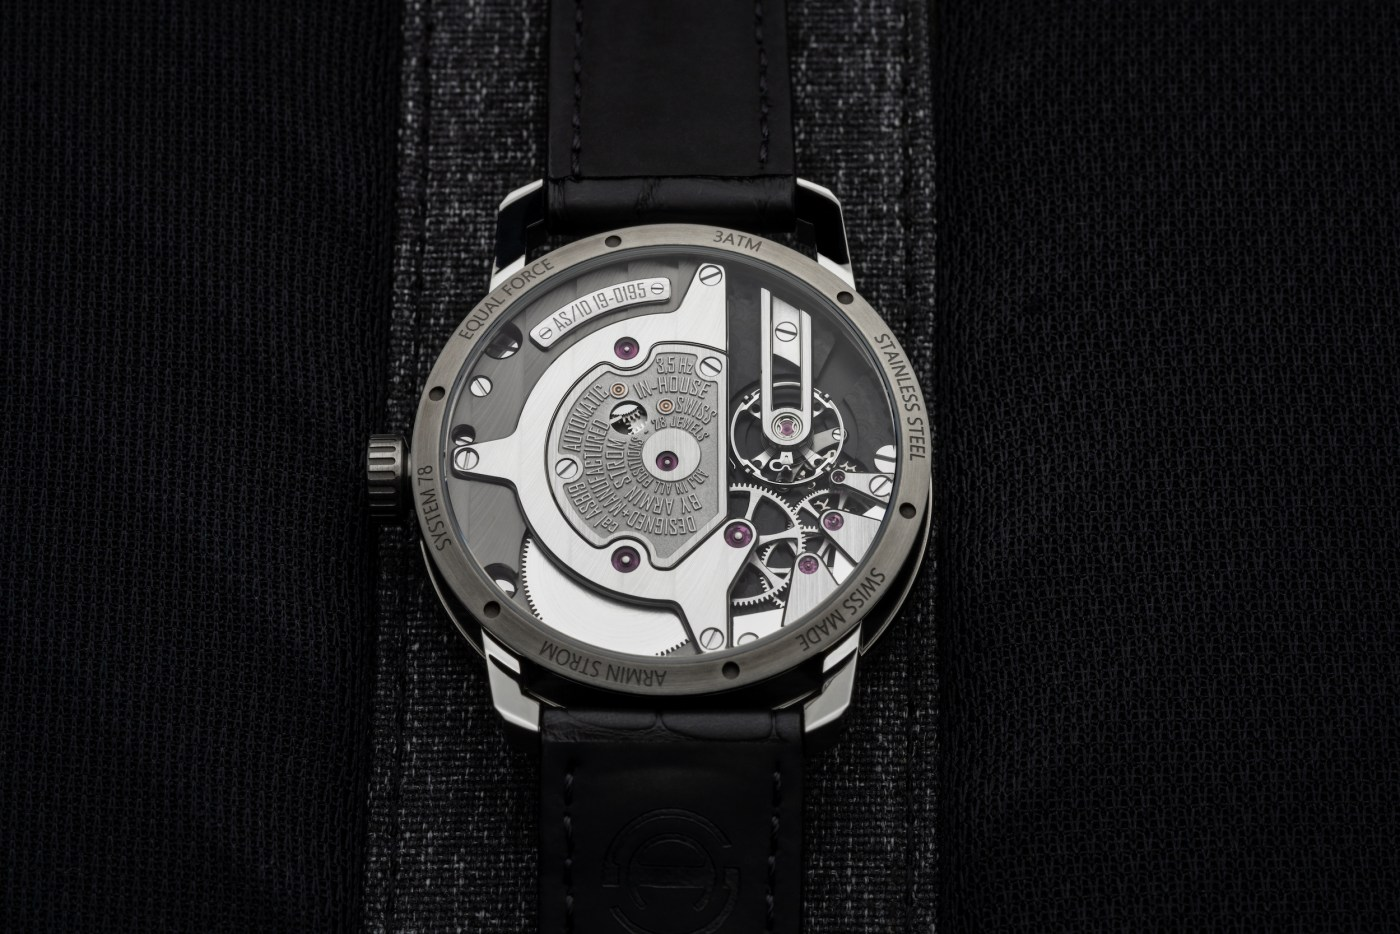 Armin Strom Gravity Equal Force Ultimate Sapphire caseback